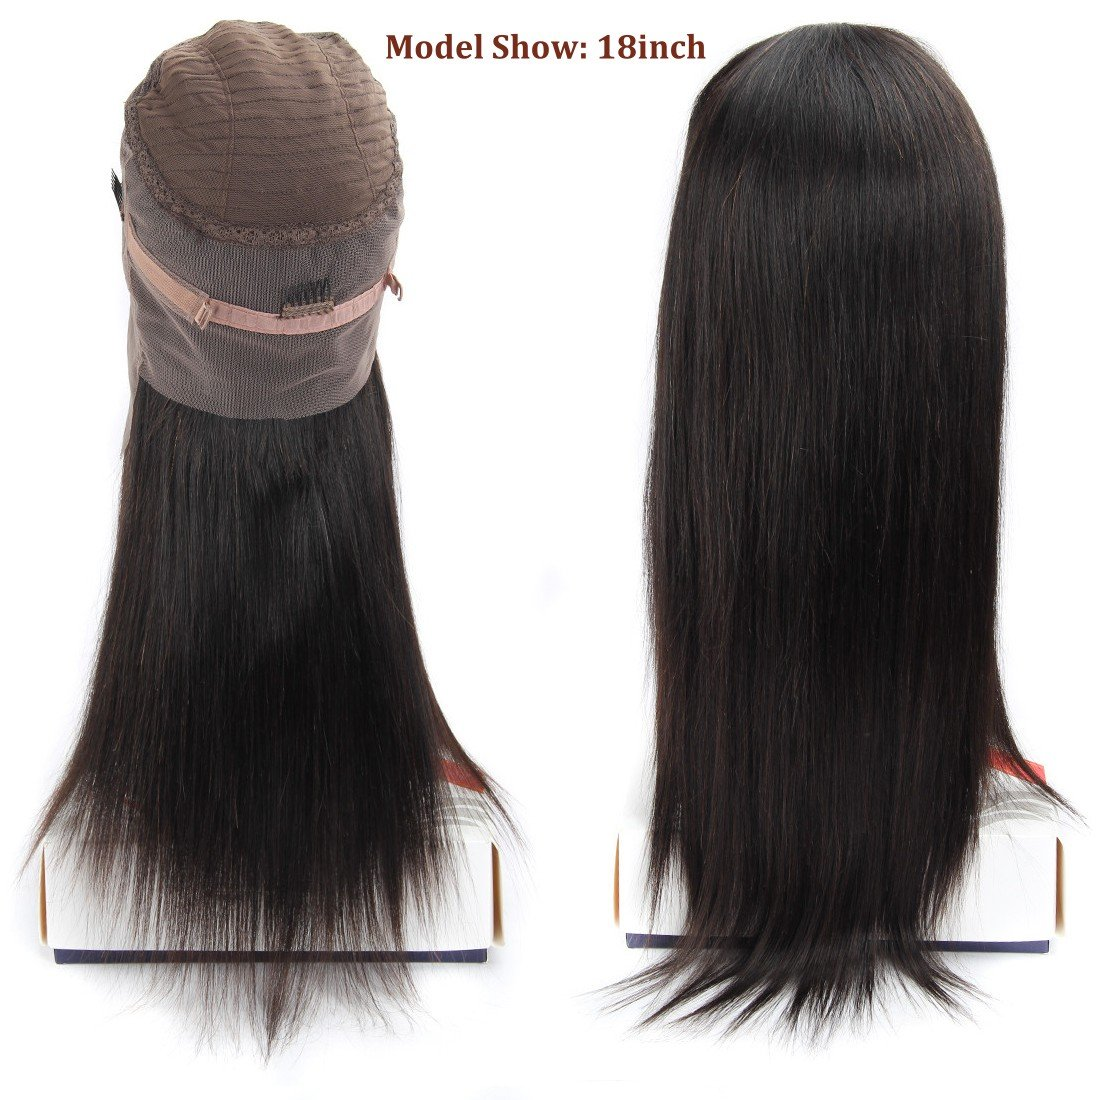 360 Frontal Lace Wig Straight 360 Lace Front Human Hair Wigs Peruvian Virgin 360 Lace Frontal Wig 130% Density with Pre Plucked Natural Hairline Baby Hair 360 Degree Lace Human Hair Wig (14inch) by QUEENA (Image #2)